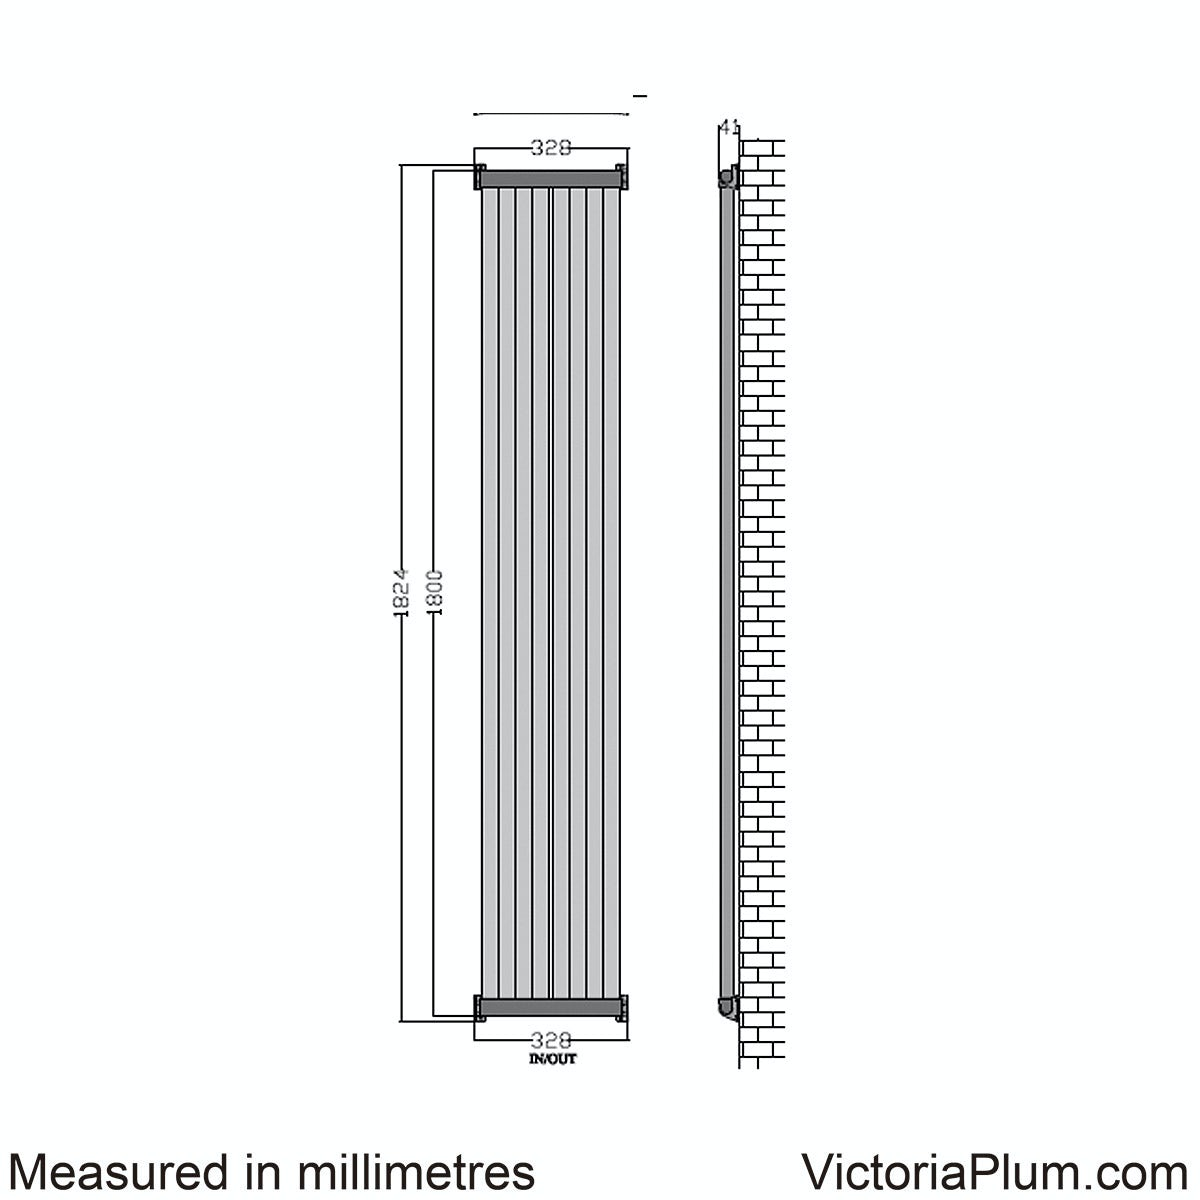 Dimensions for Mode Zephyra vertical radiator 1800 x 328